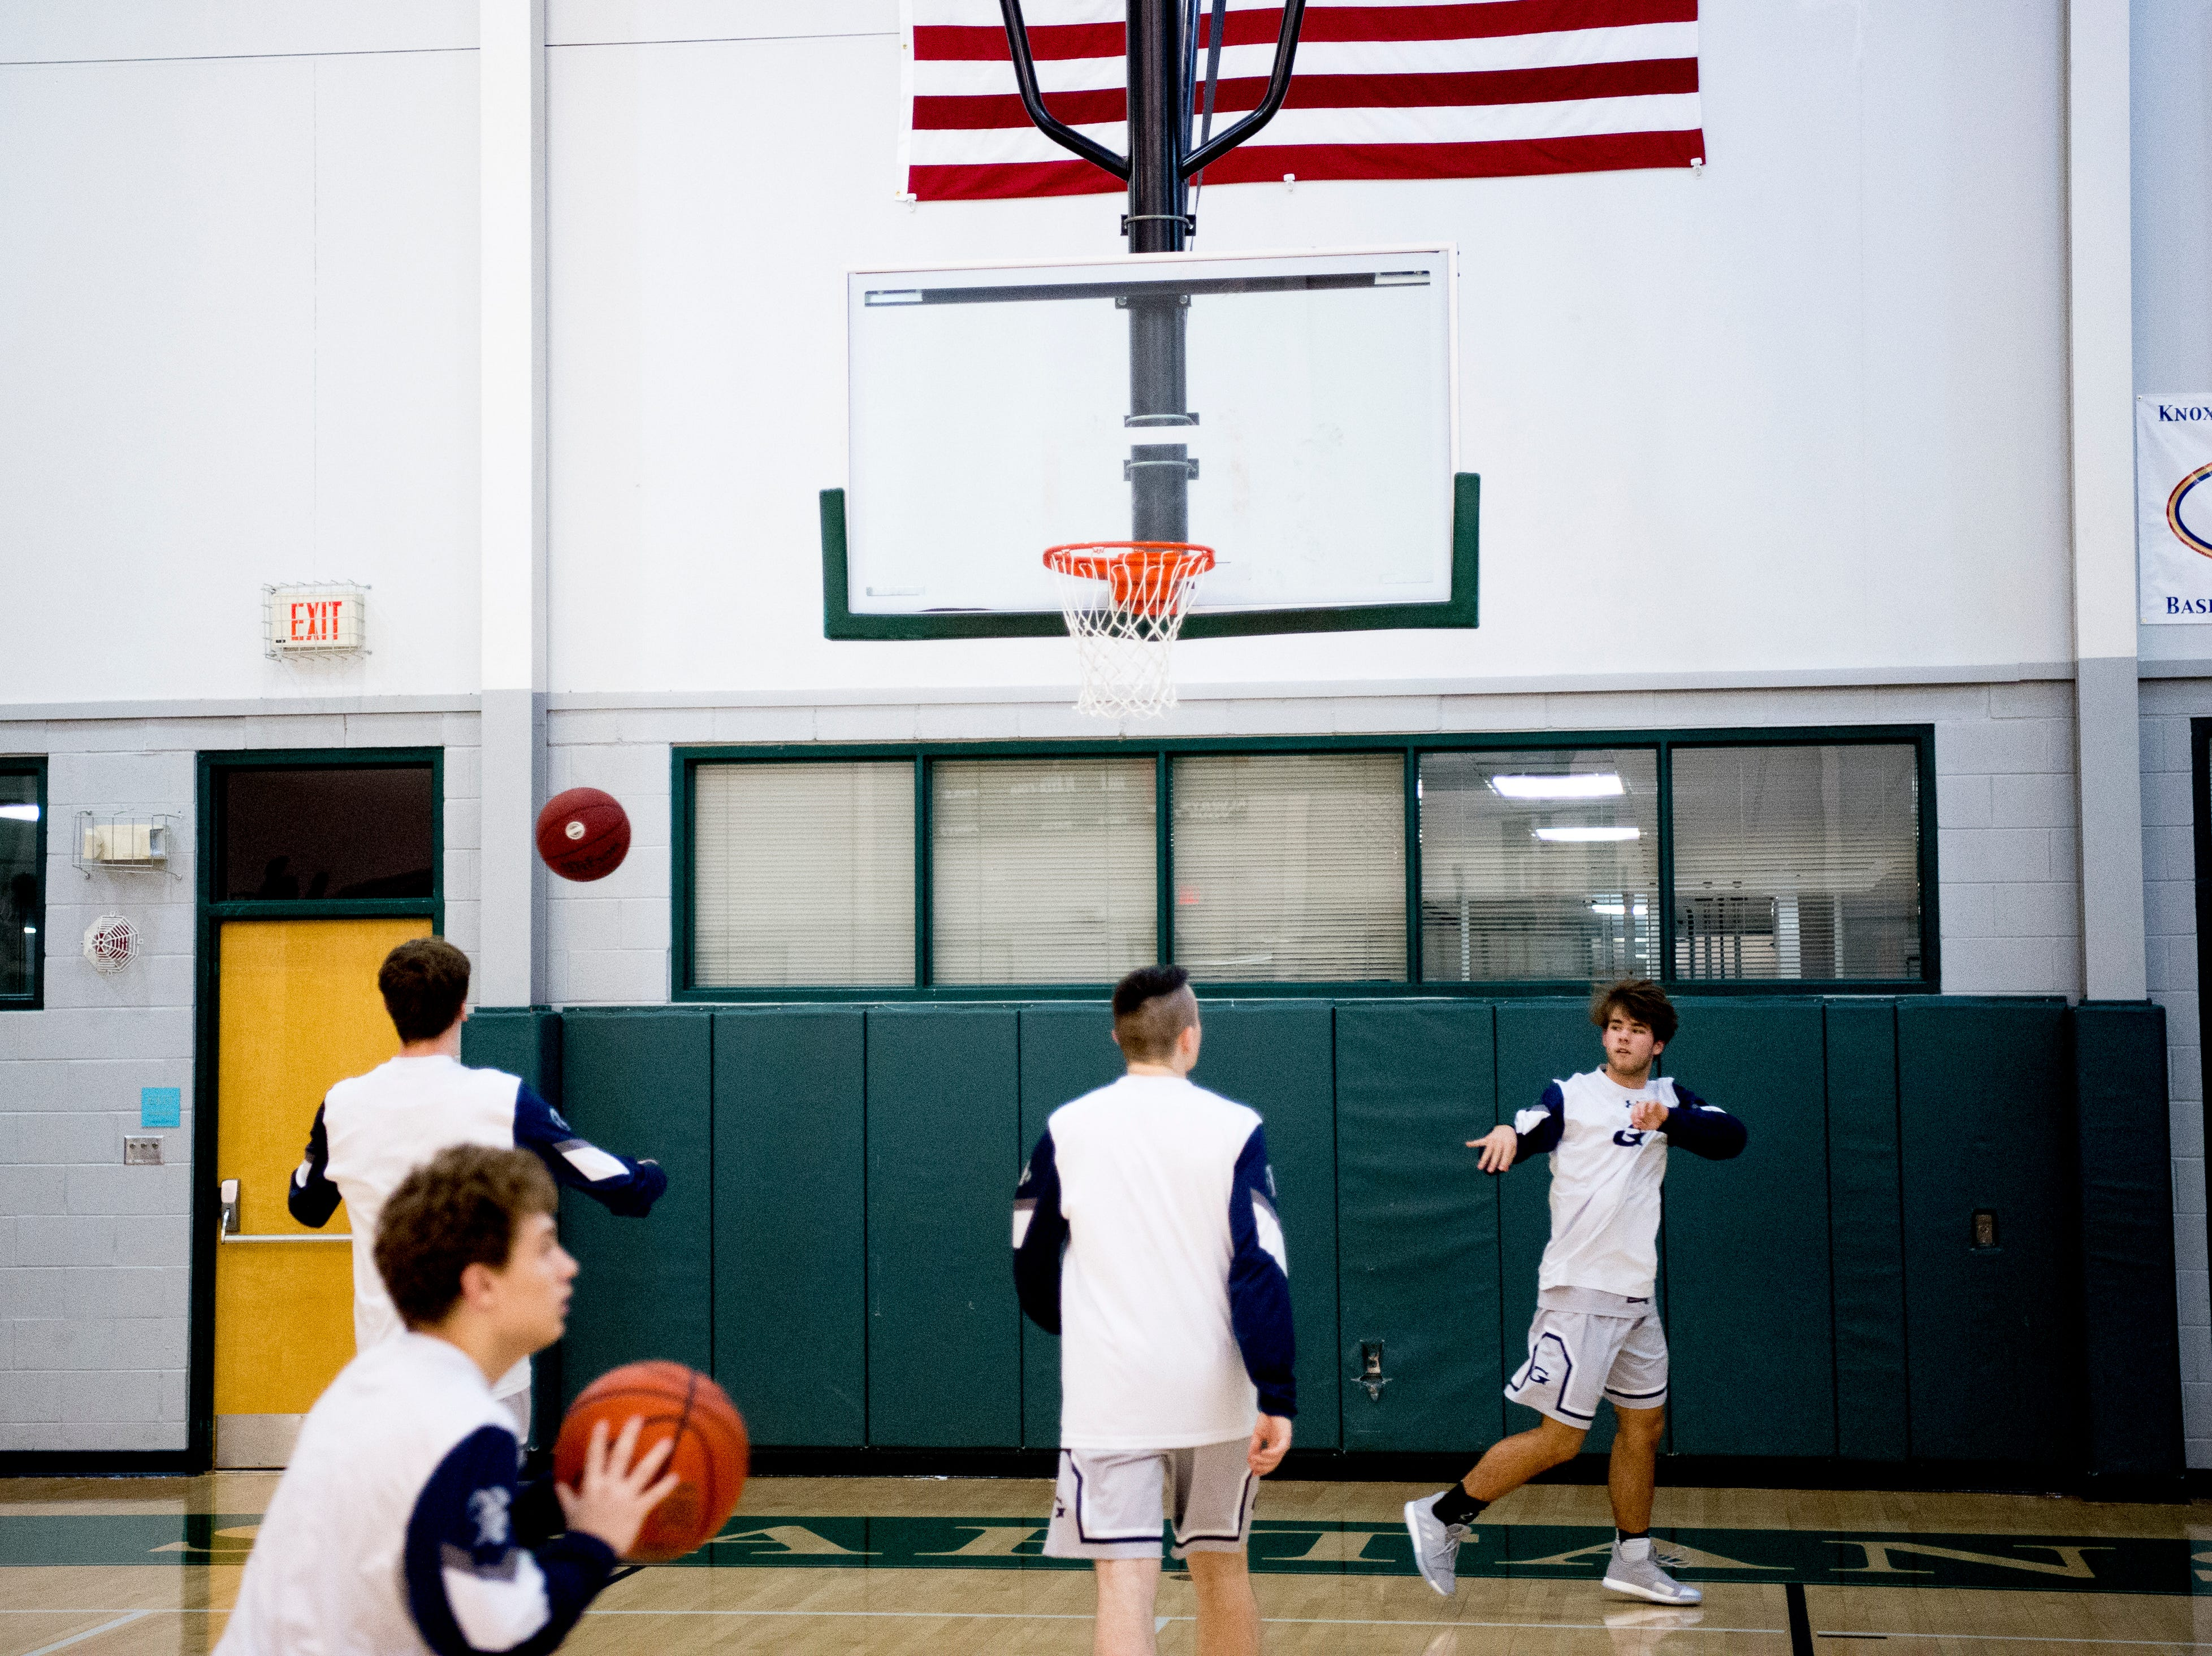 Grace Christian players warm up during a semifinal game between Grace Christian and Chattanooga Christian at Webb School of Knoxville in Knoxville, Tennessee on Friday, February 15, 2019.